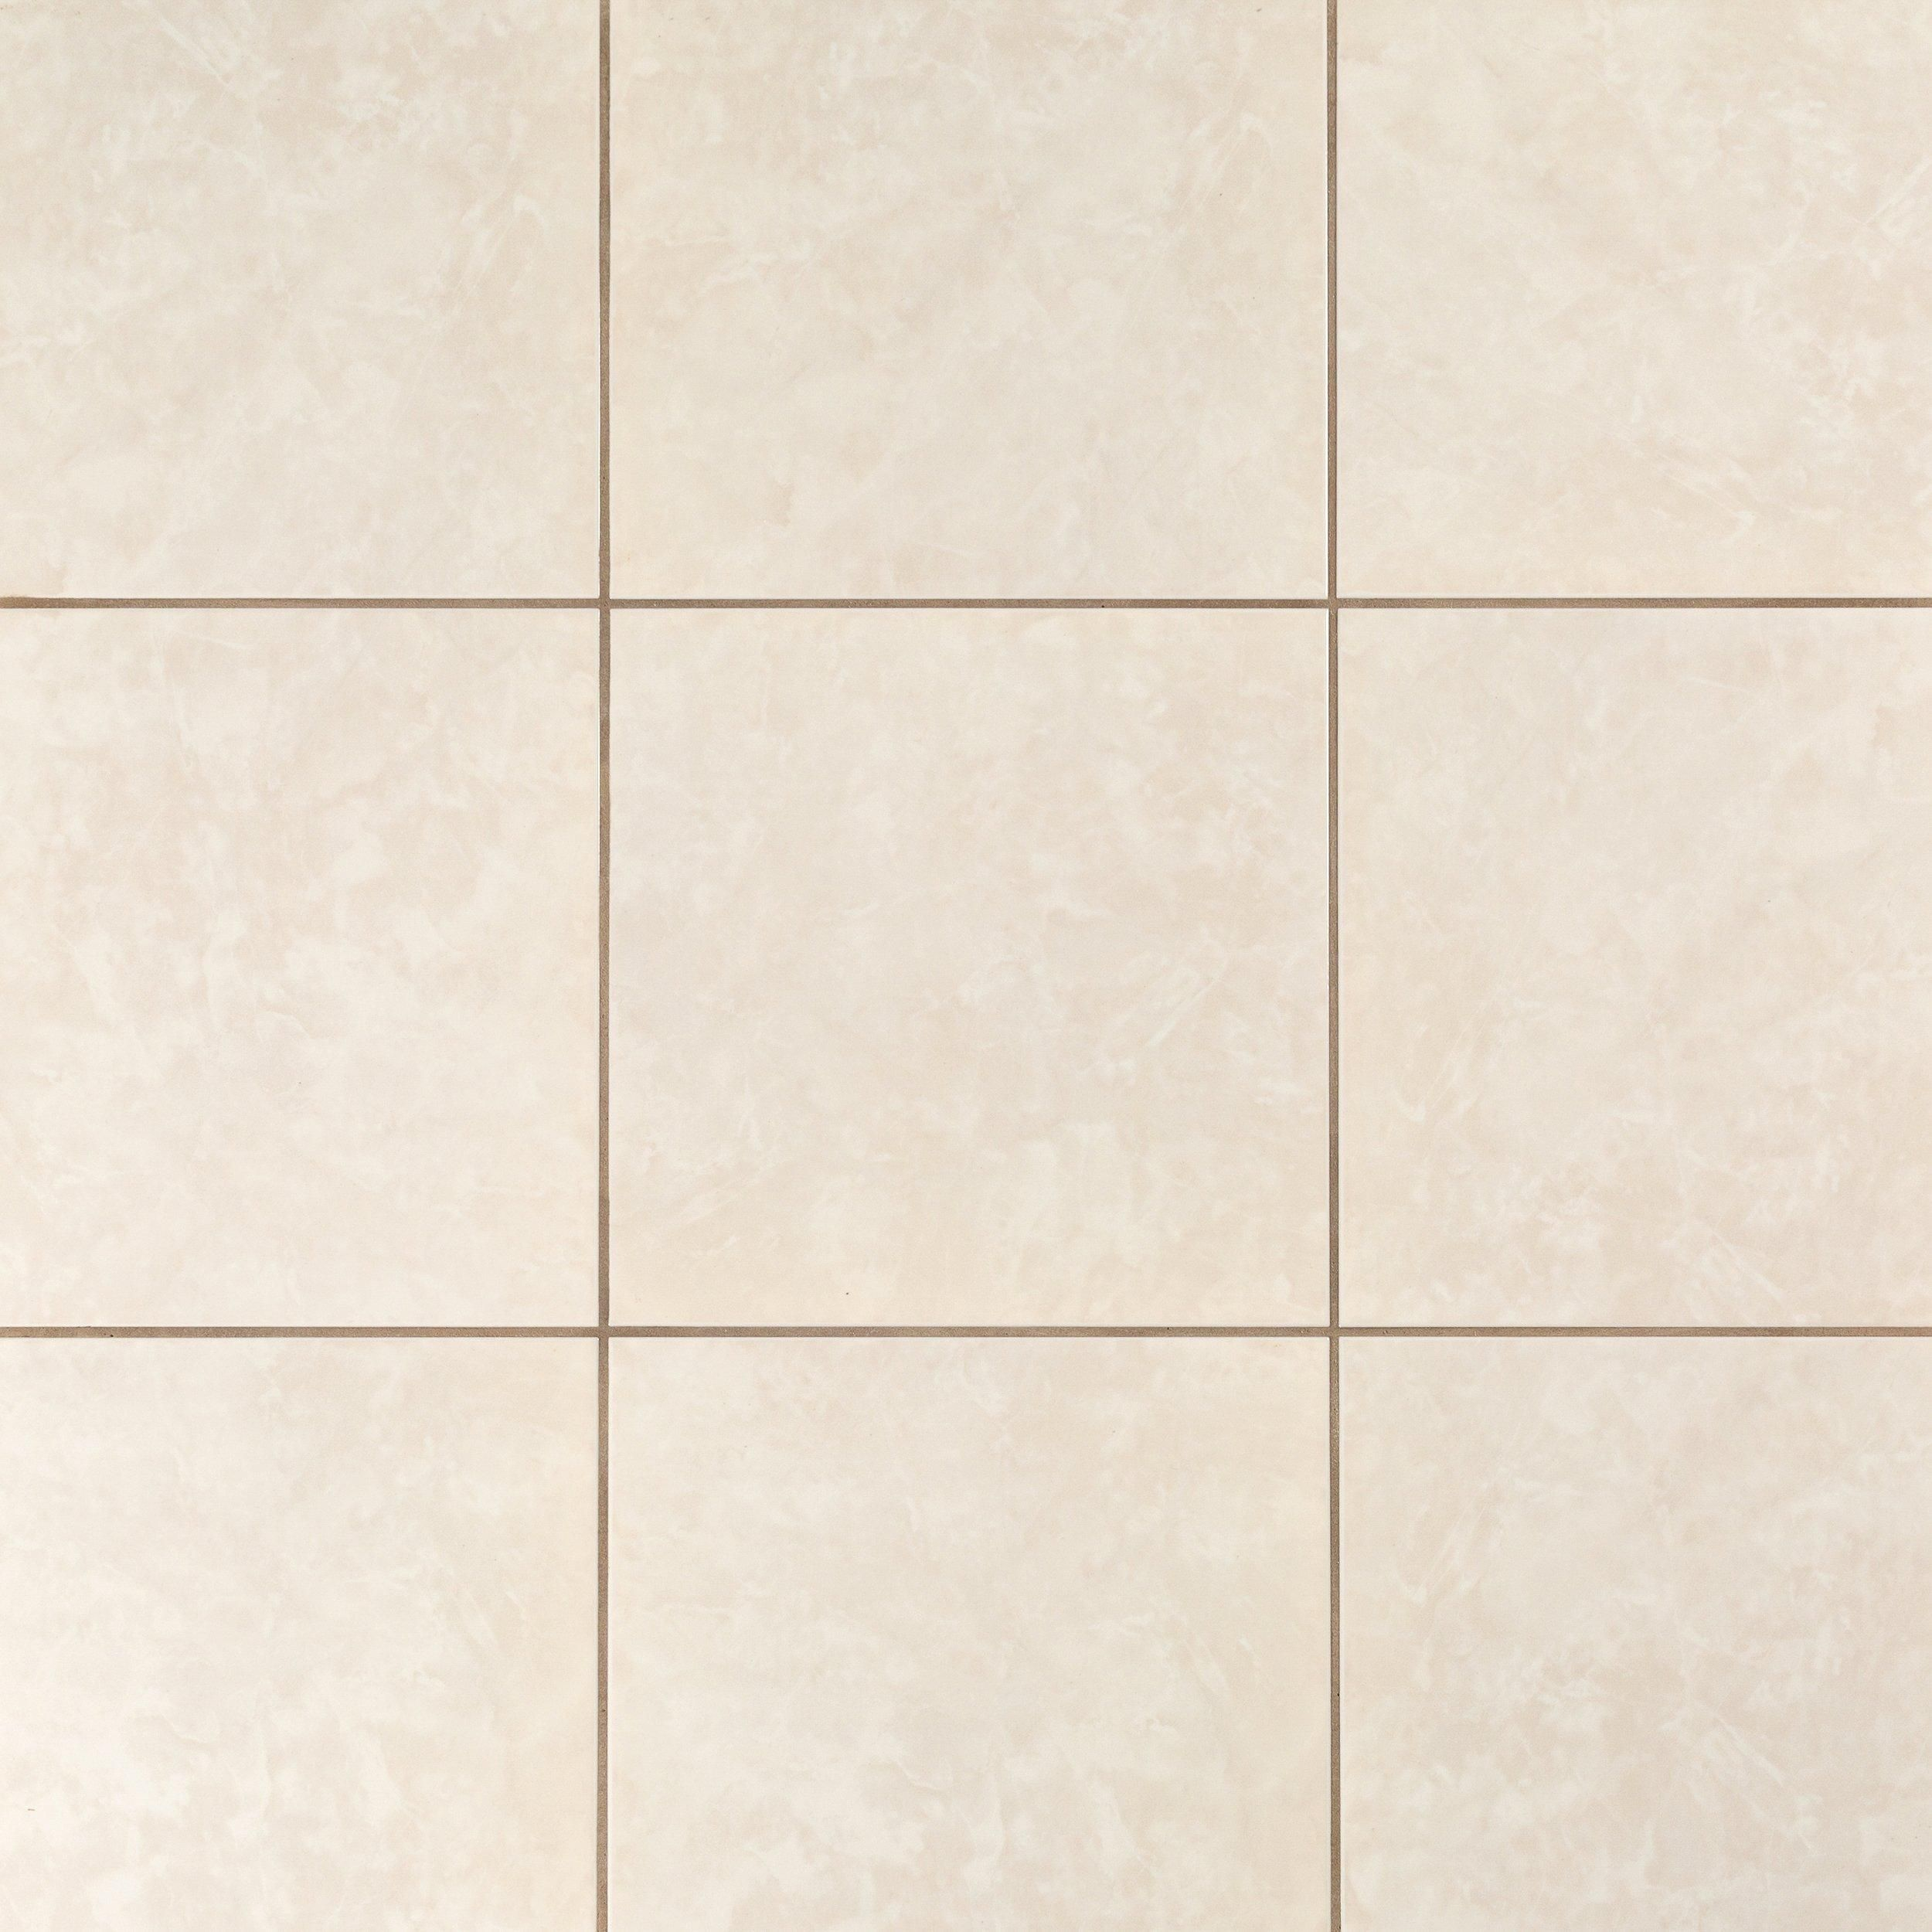 Gala Crema Ii Ceramic Tile Floor Decor In 2020 Beige Ceramic Ceramic Tiles Ceramic Decor